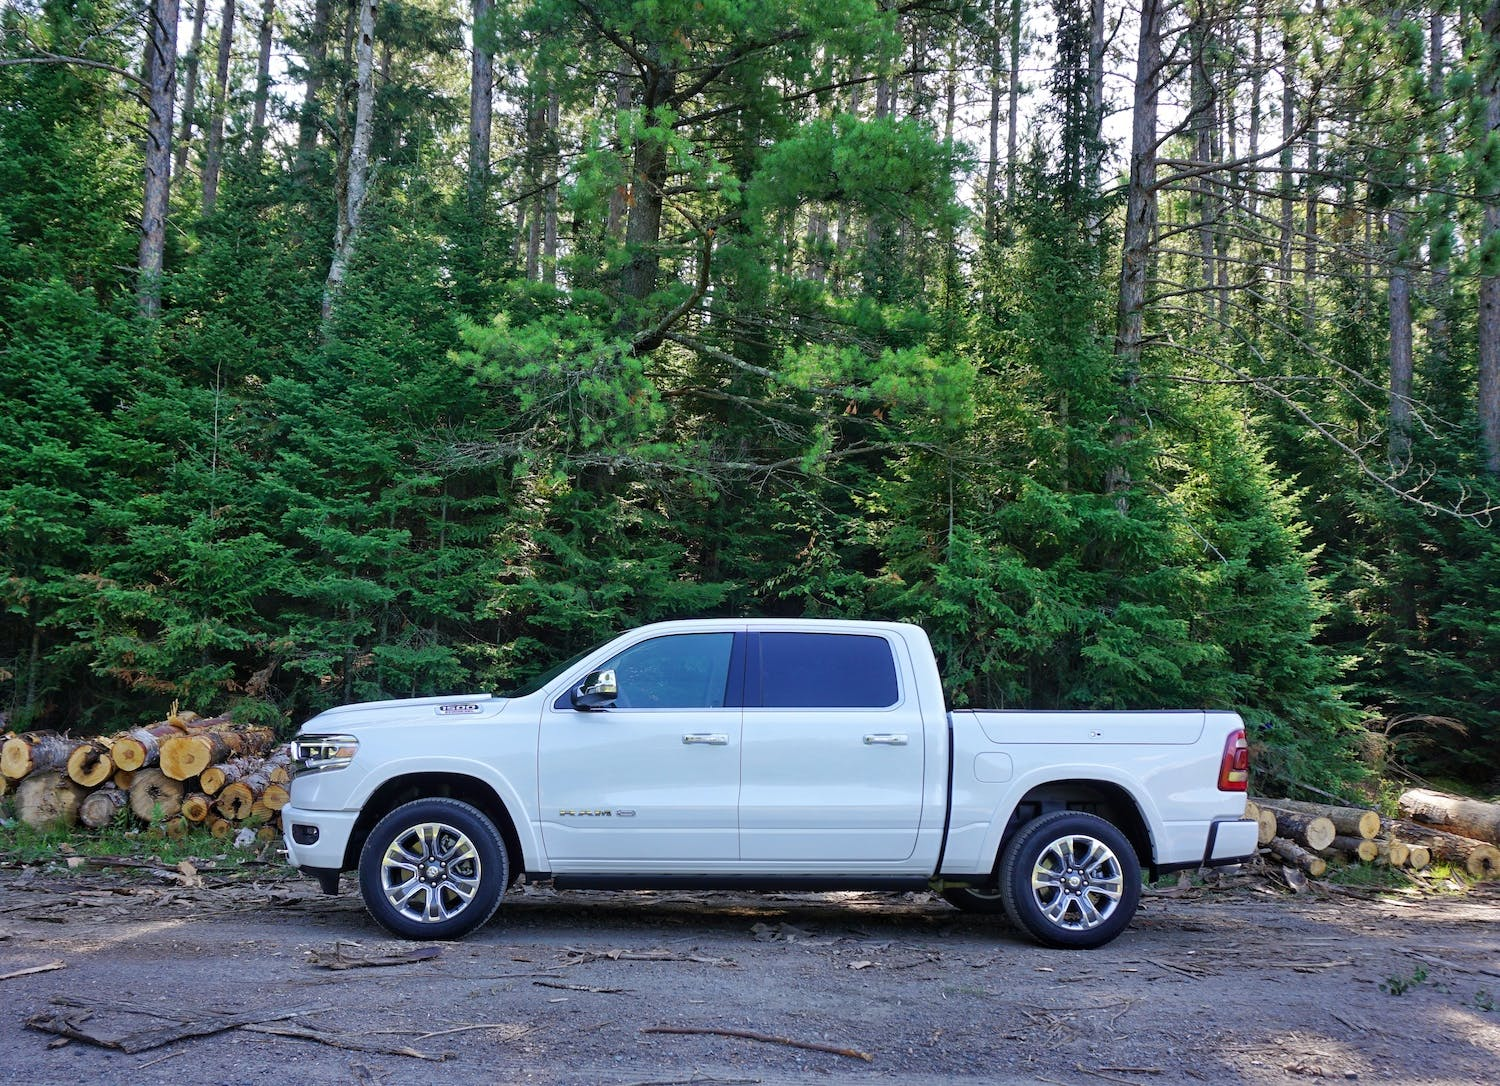 47 New 2020 Dodge Ram Ecodiesel Review with 2020 Dodge Ram Ecodiesel